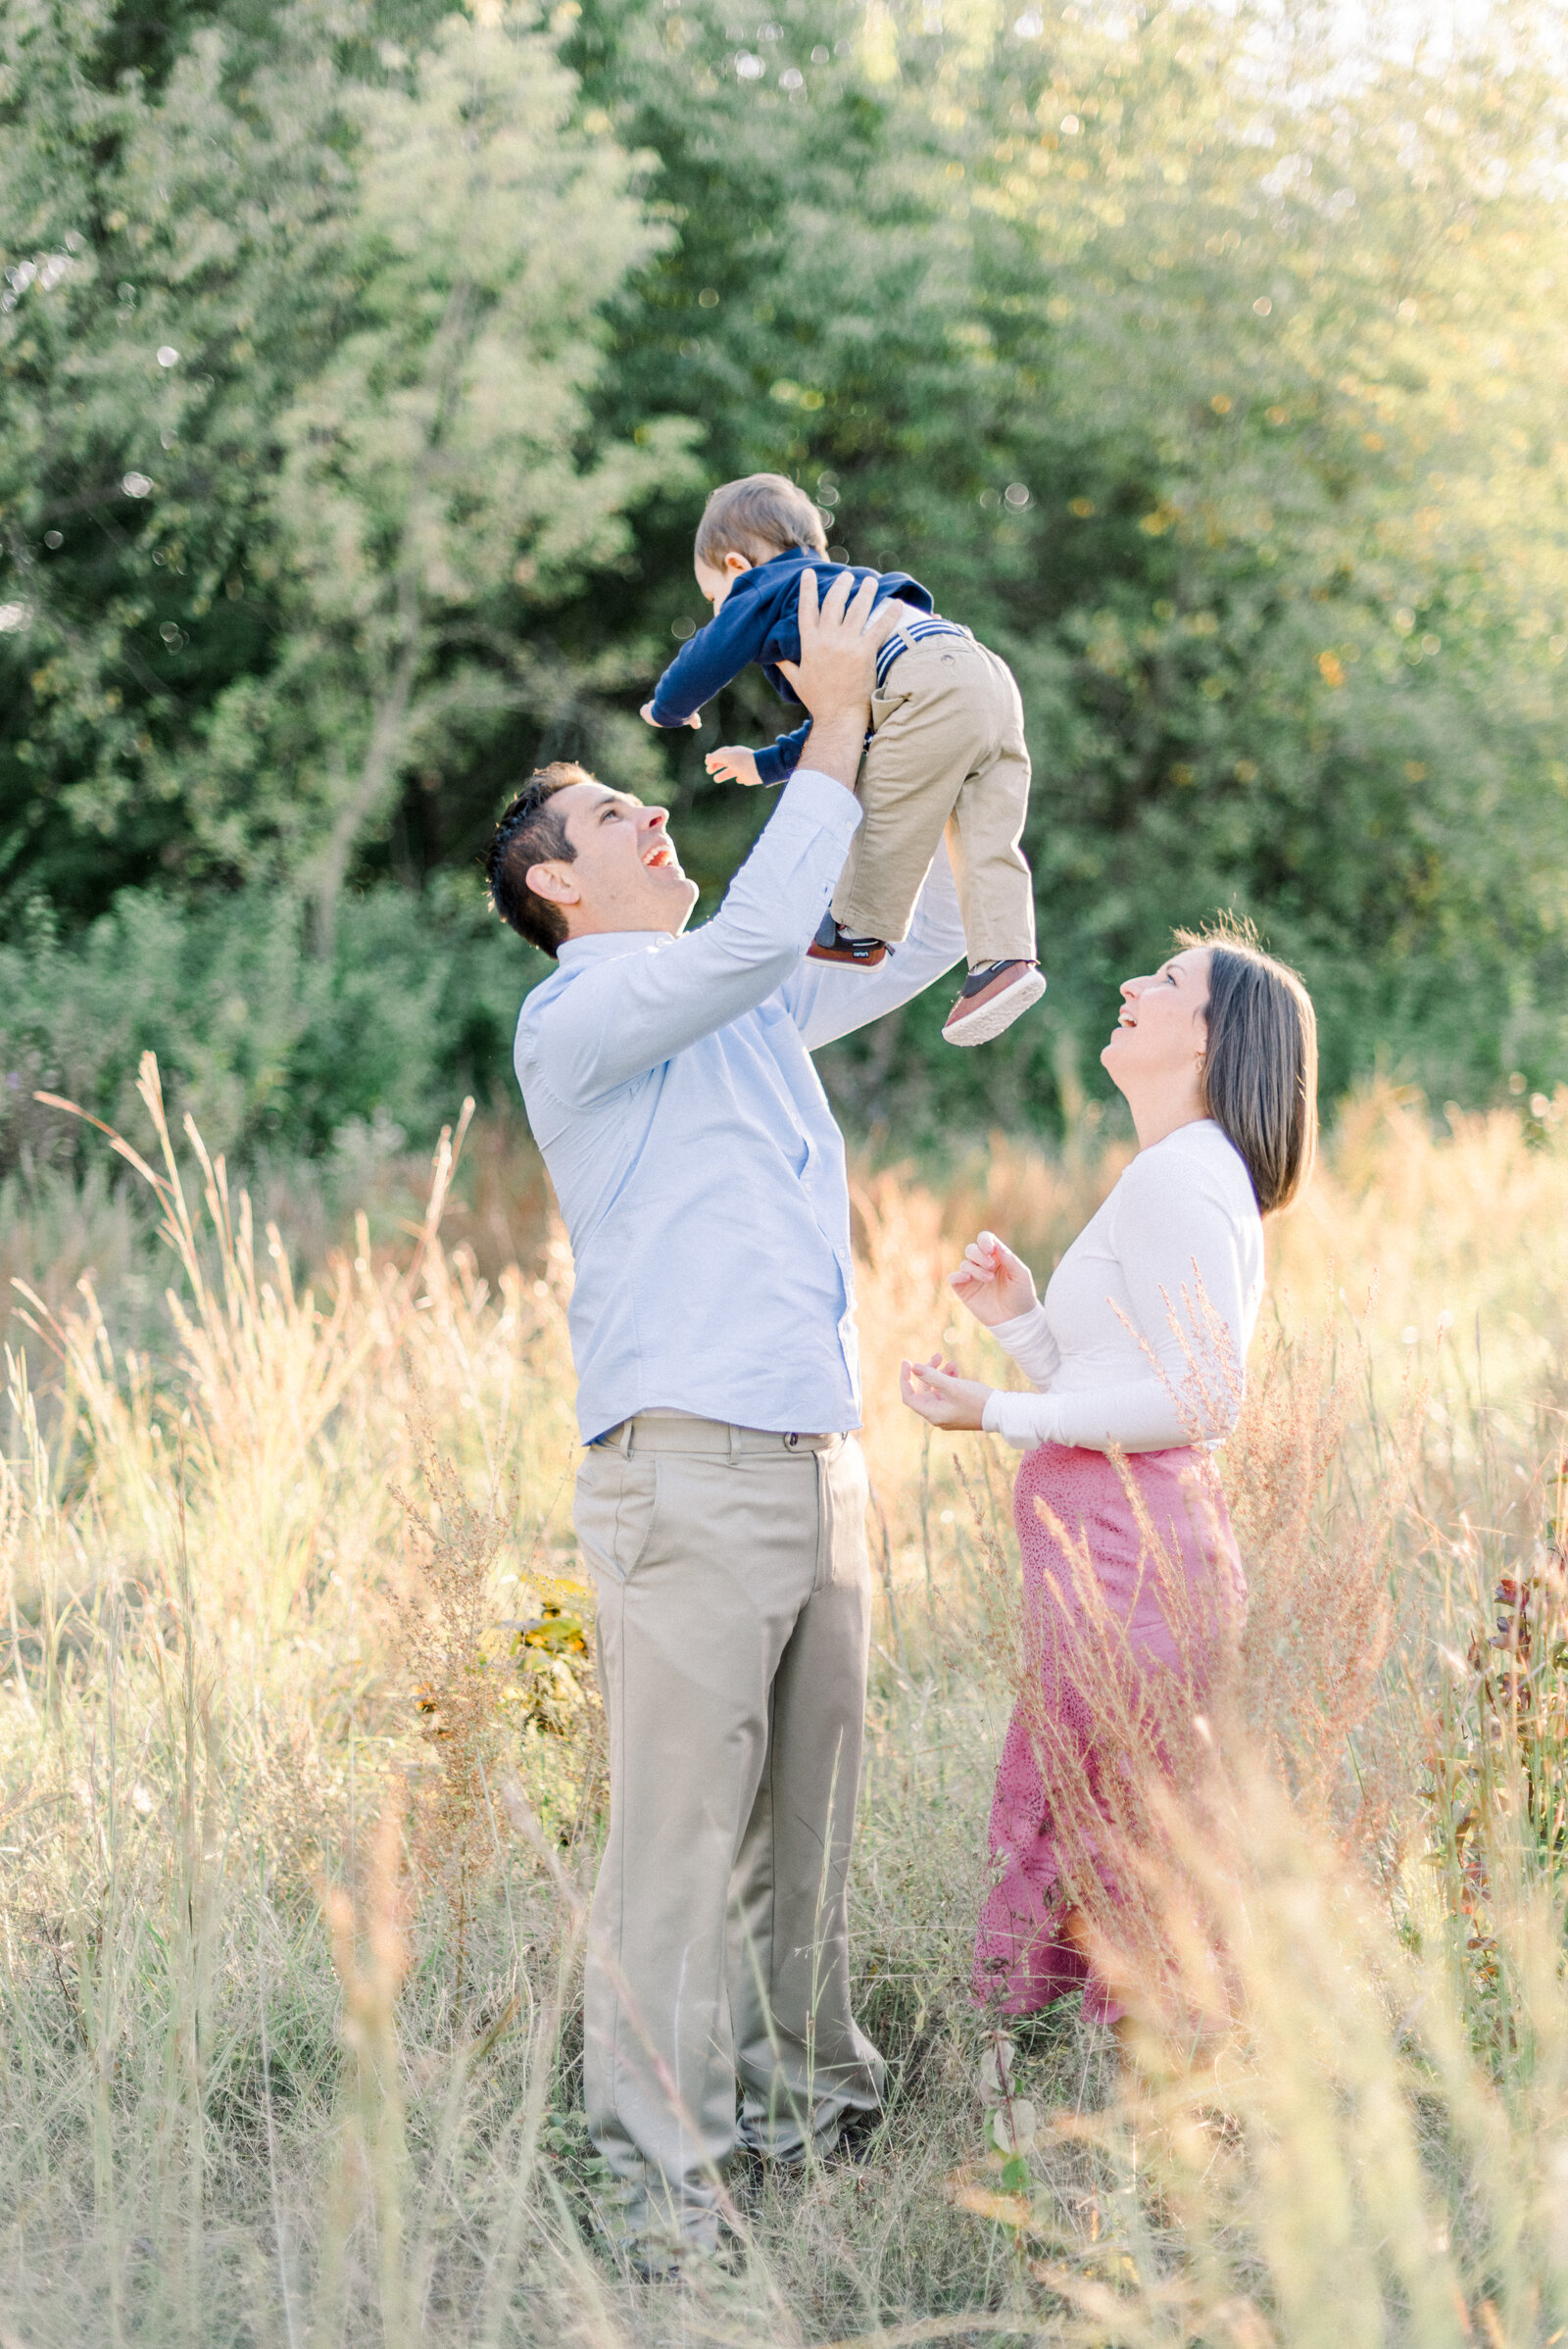 Sunset_Family_Photoshoot_Shawnee_Mission_Park_Kansas_City_Robinson020-11